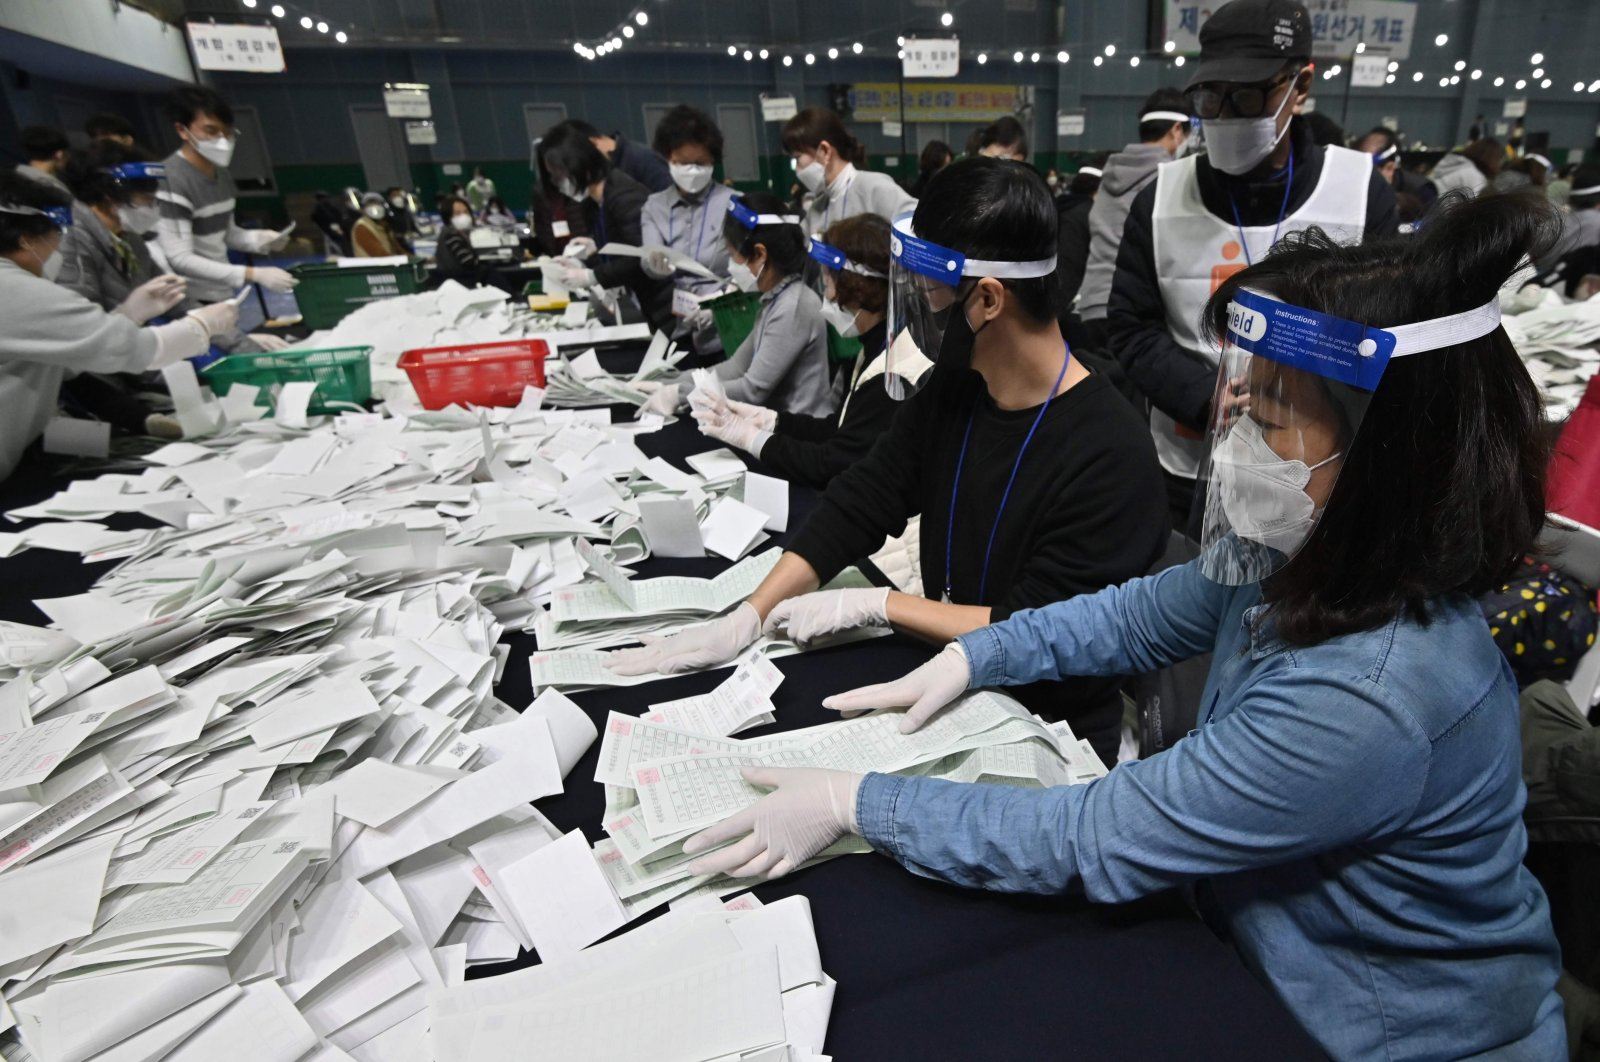 South Korean election officials sort voting papers for ballot counting in the parliamentary elections at a gymnasium in Seoul, South Korea, April 15, 2020. (AFP Photo)